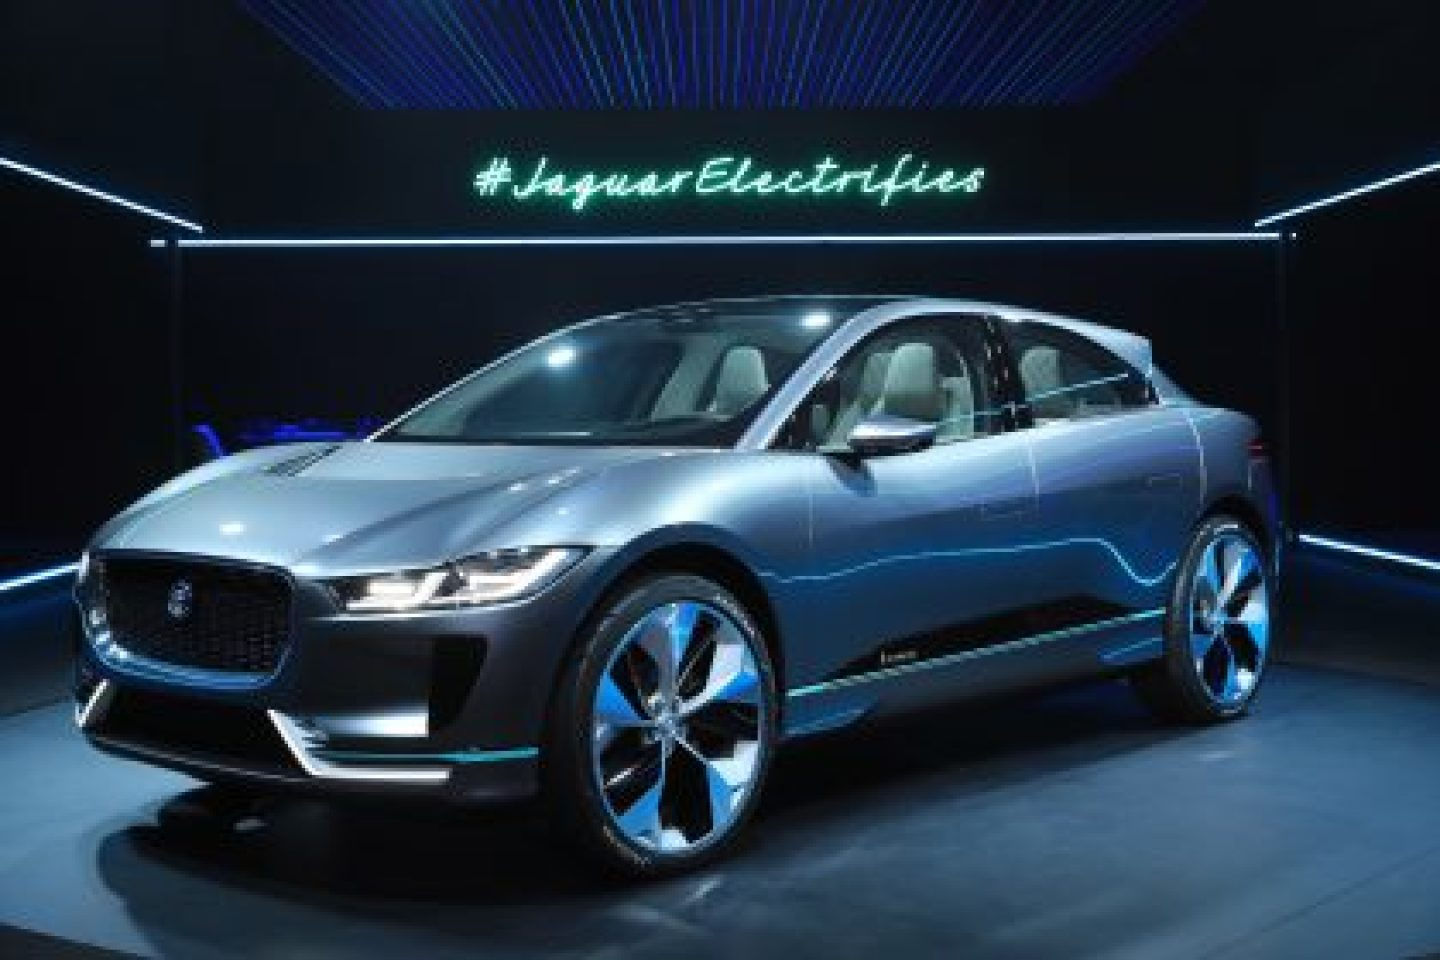 The I-PACE Electric Vehicle accelerates to 60 mph in around 4 seconds, and features a 90kWh battery with an estimated range of 220 miles (EPA cycle)(1) – Driver-focused all-wheel-drive performance from twin-electric motors generating 516-lb ft of torque and 400hp(1)